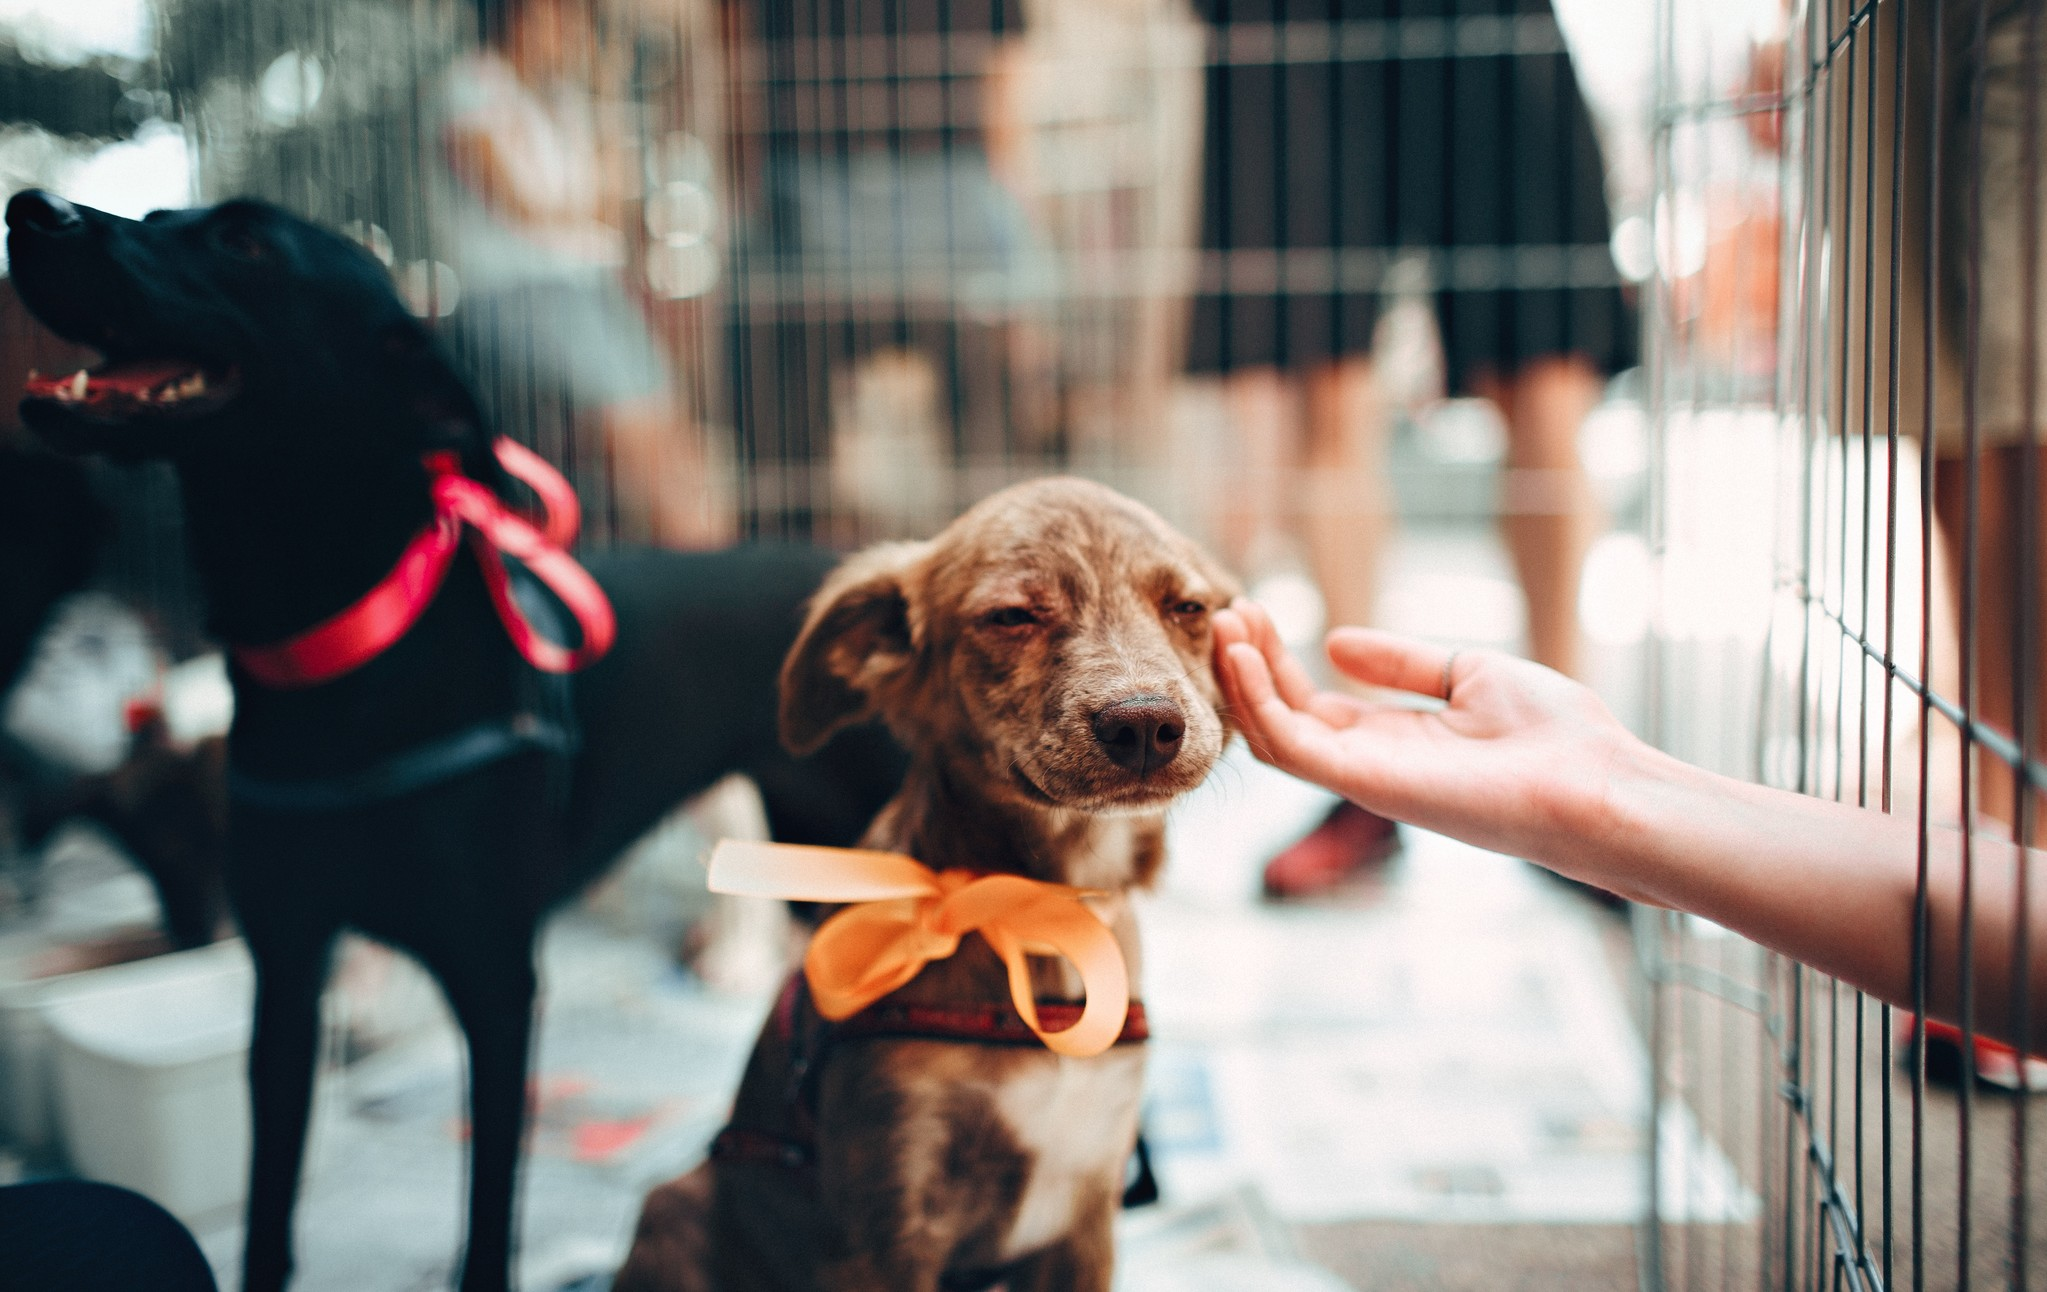 So You Brought Home a New Dog: Now What?